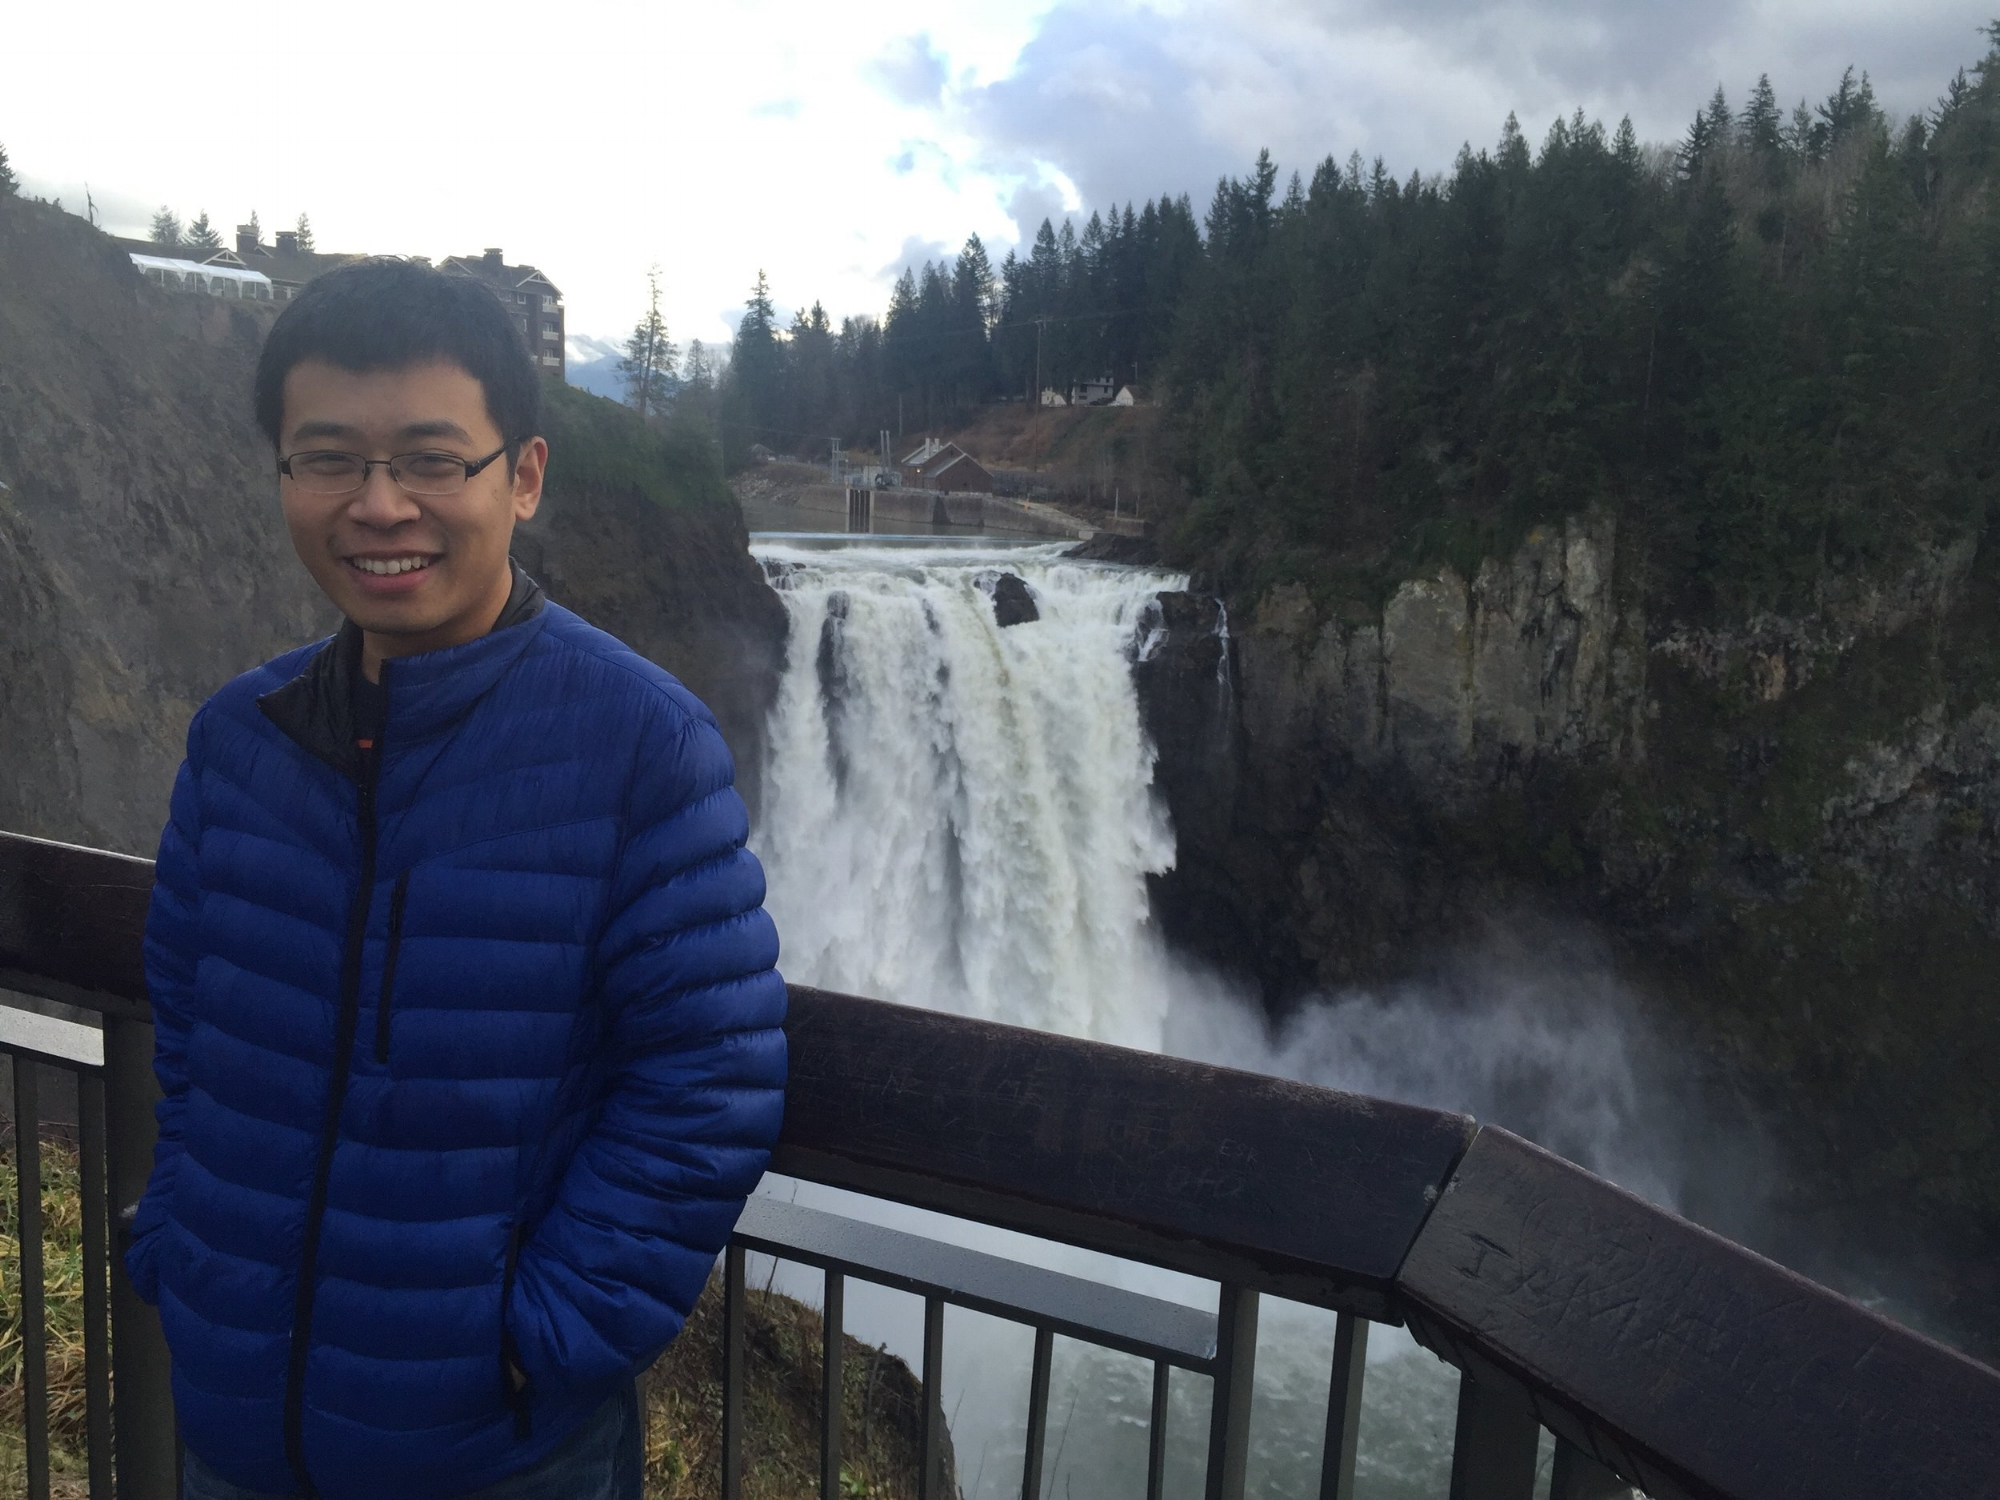 Snoqualmie Falls, WA, Winter 2016